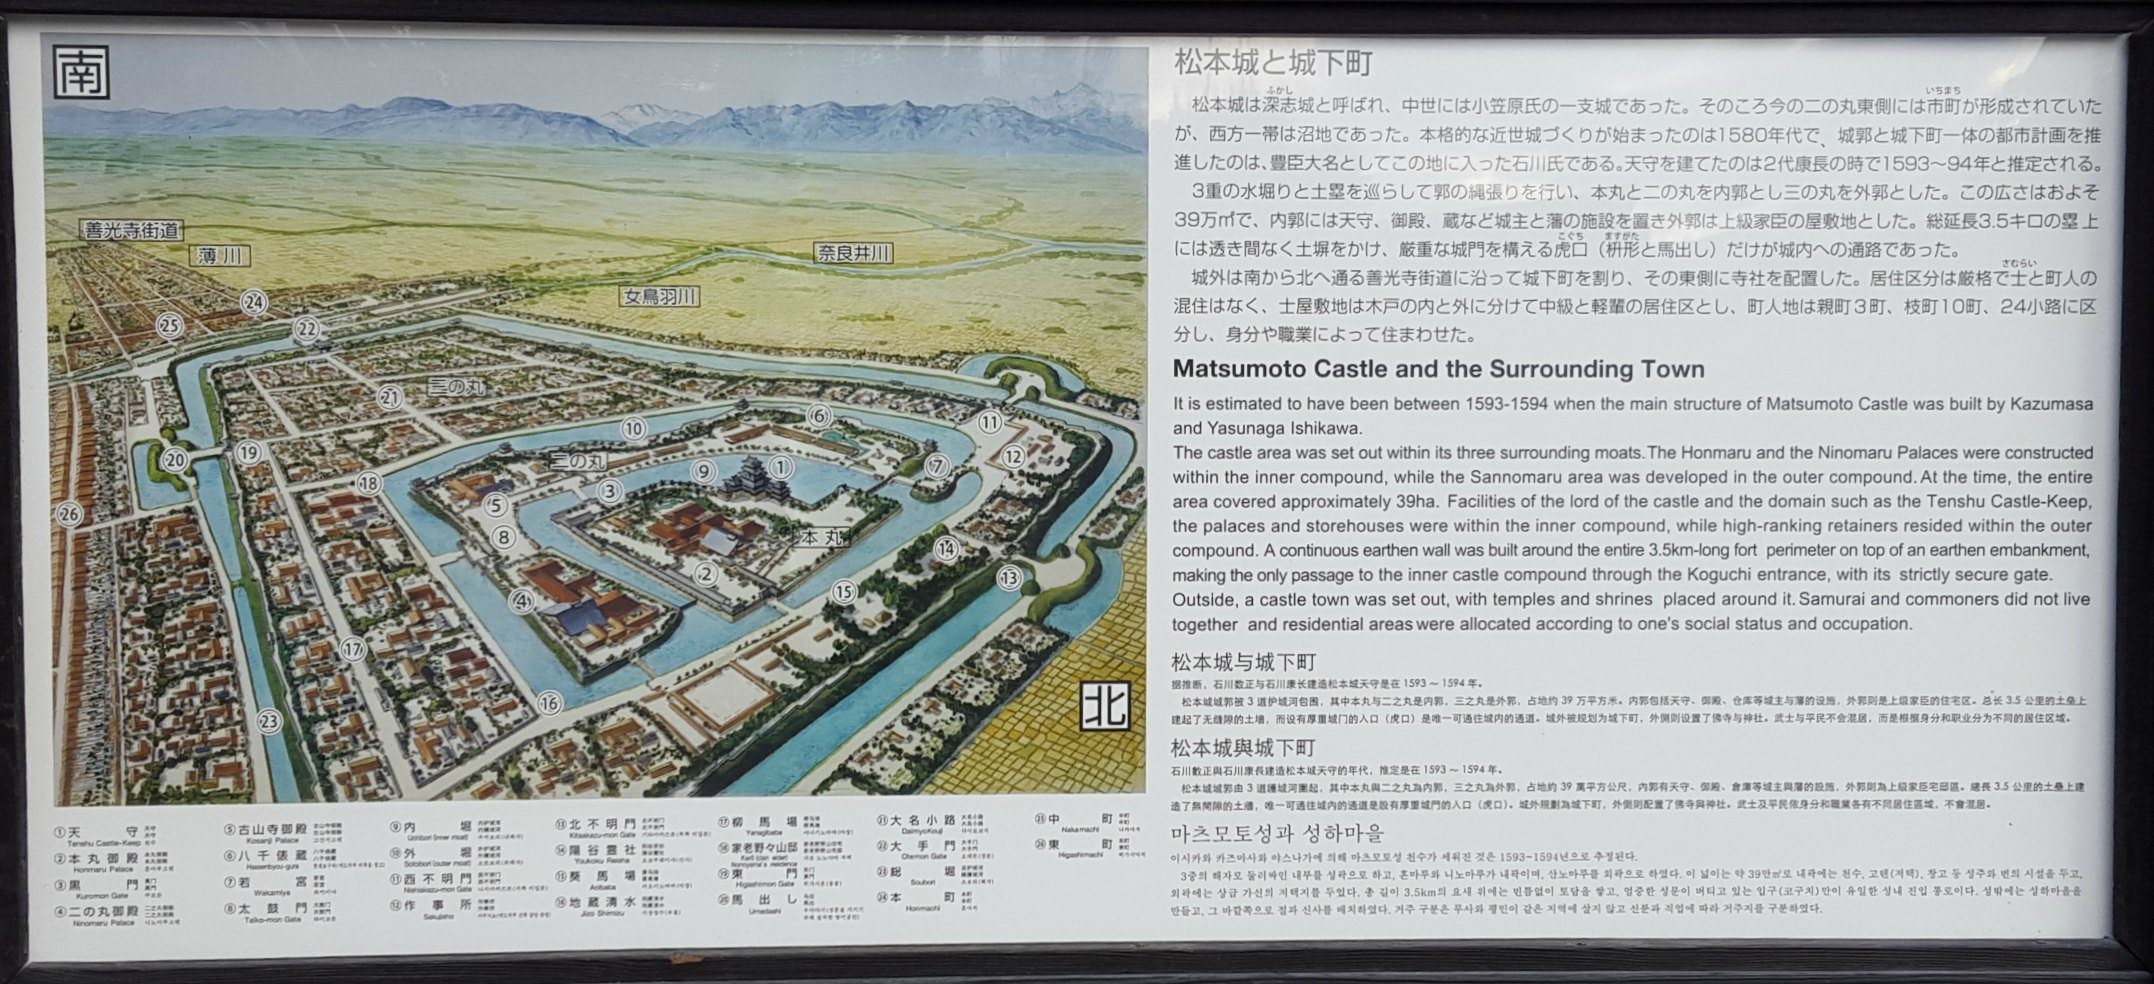 Signage showing what Matsumoto used to look like - five concentric moats!